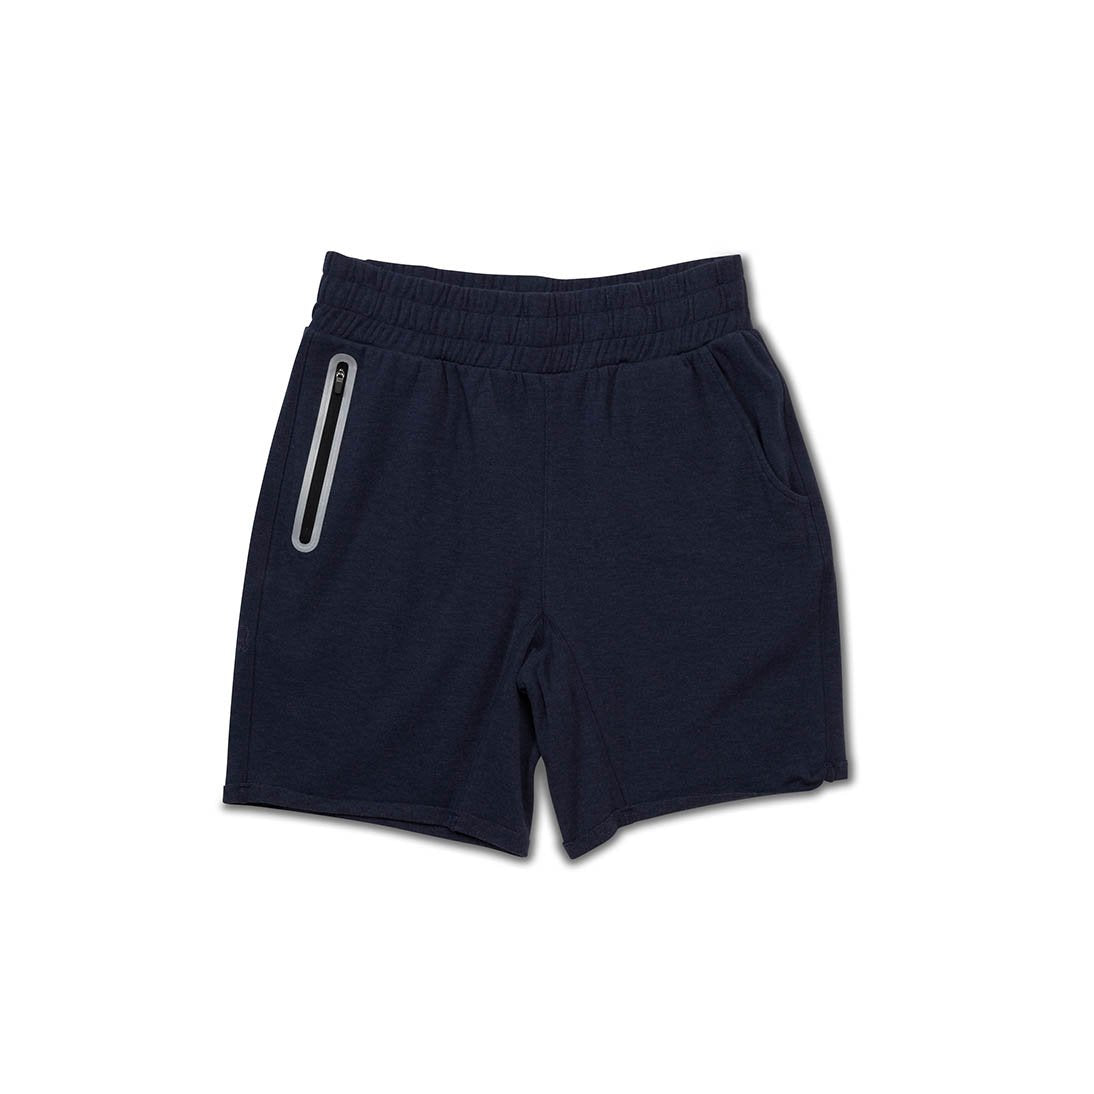 Active Puremeso Gym Short - Charcoal